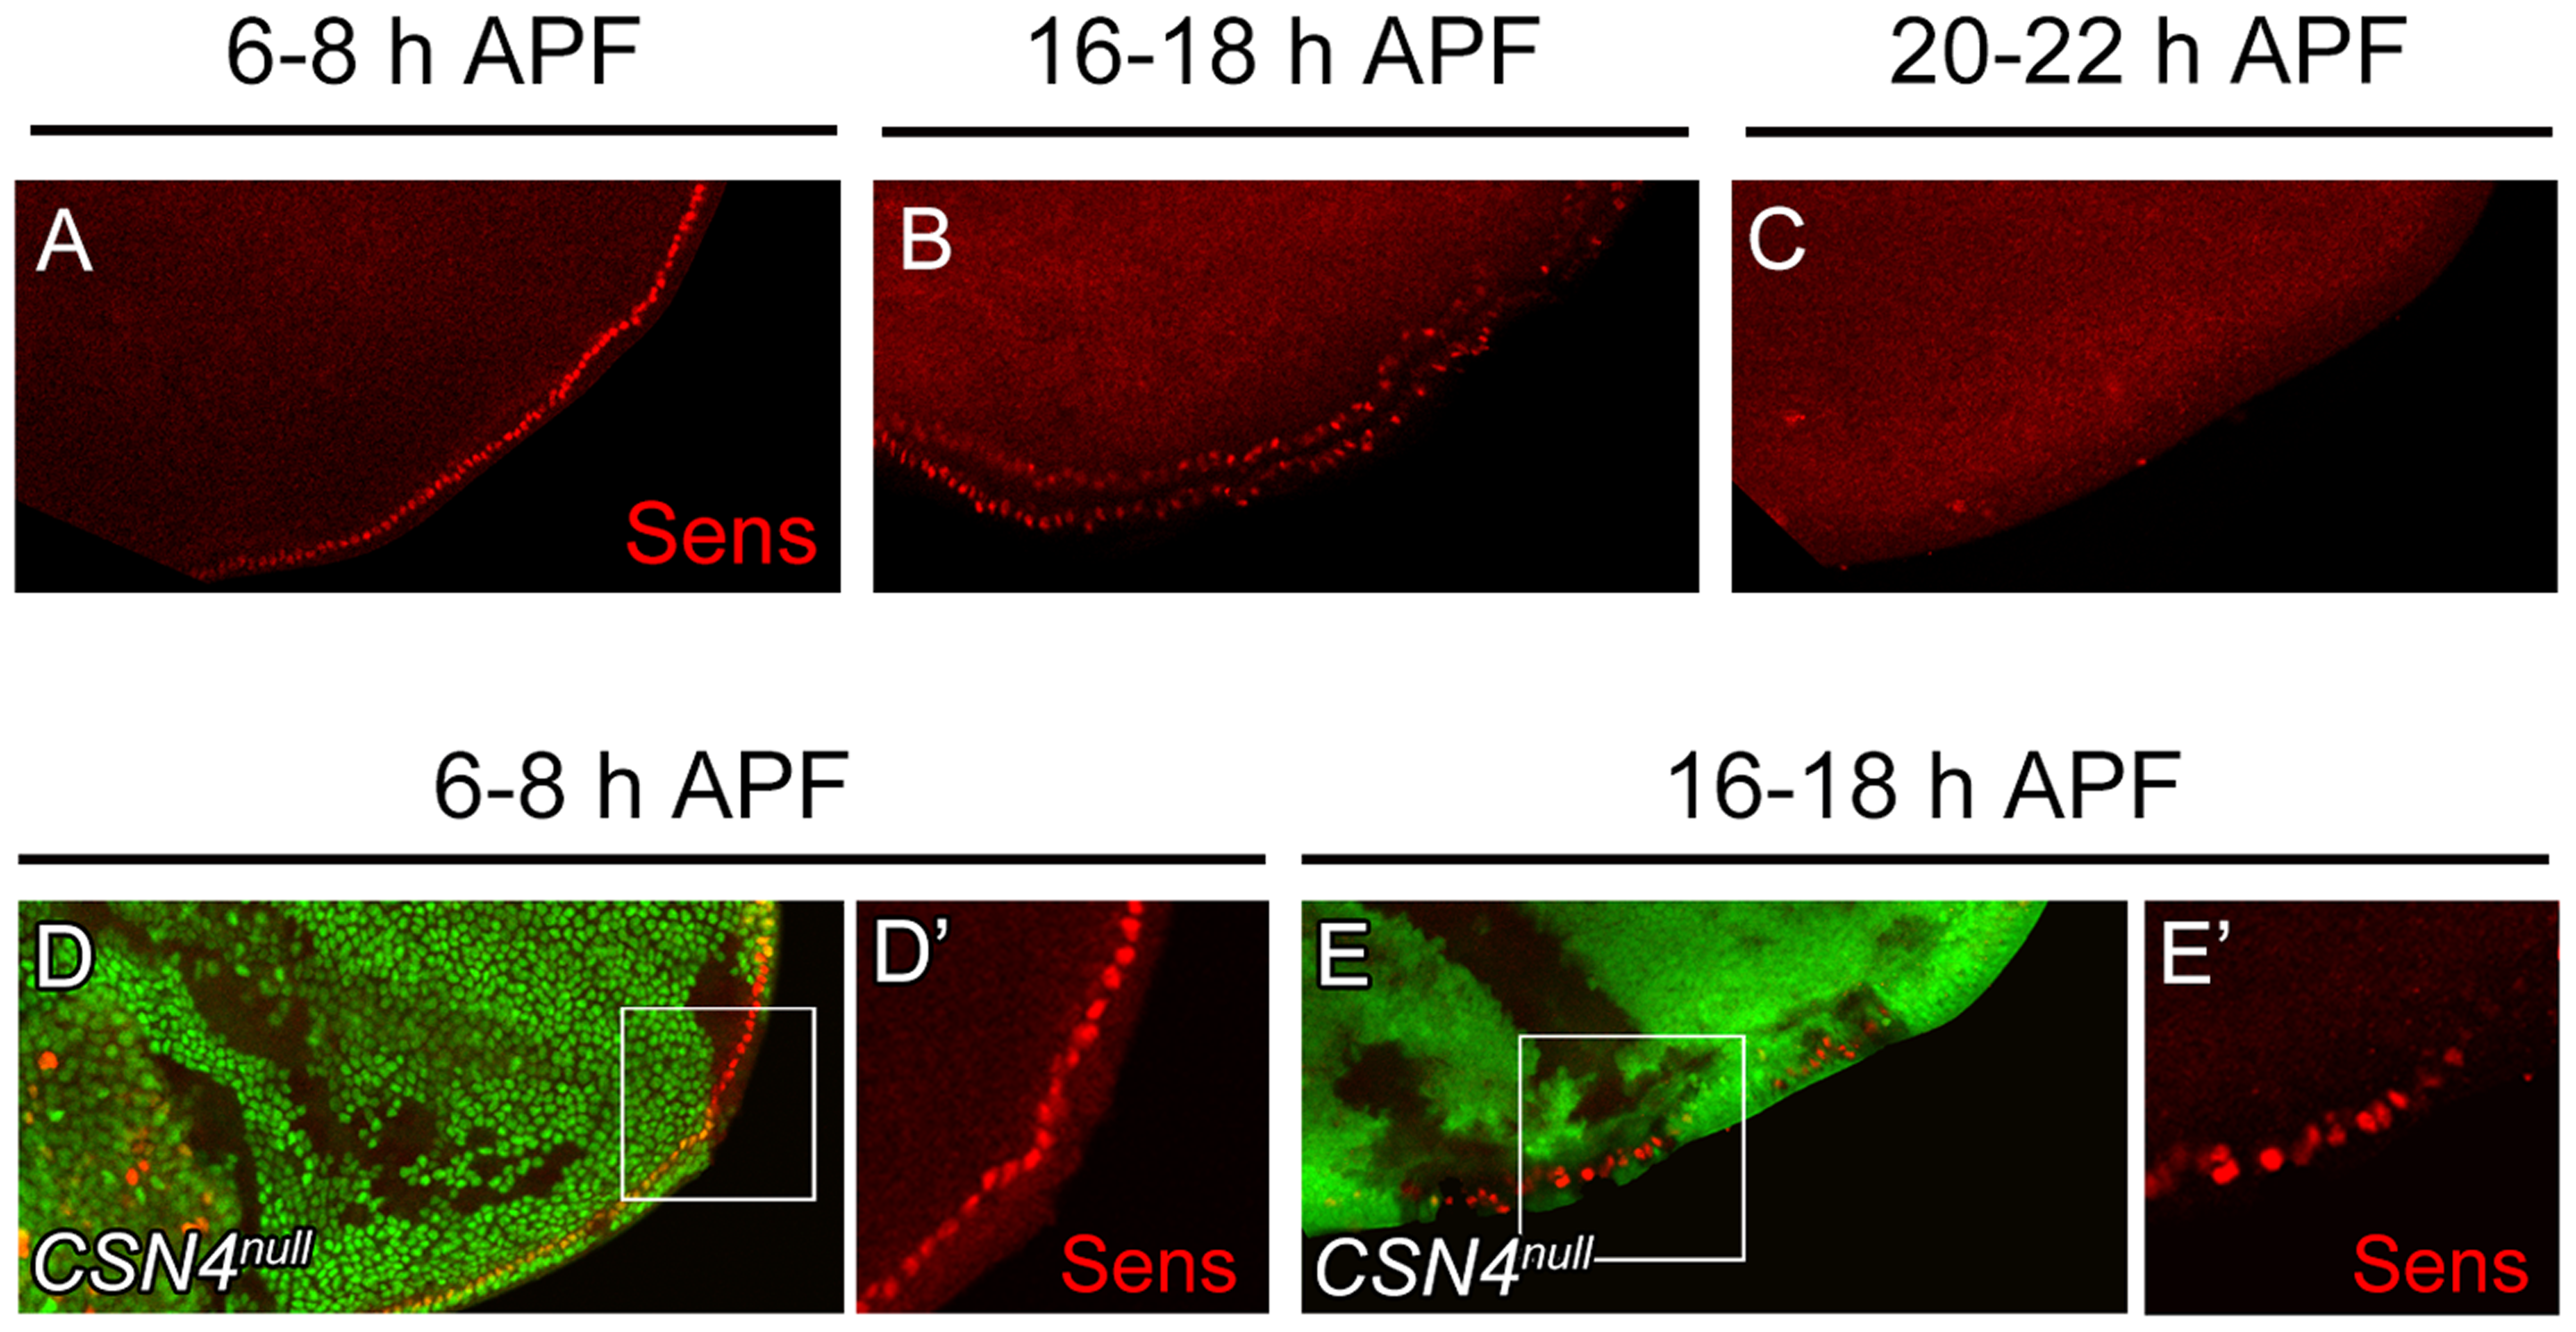 Temporal regulation of Sens expression by CSN4.